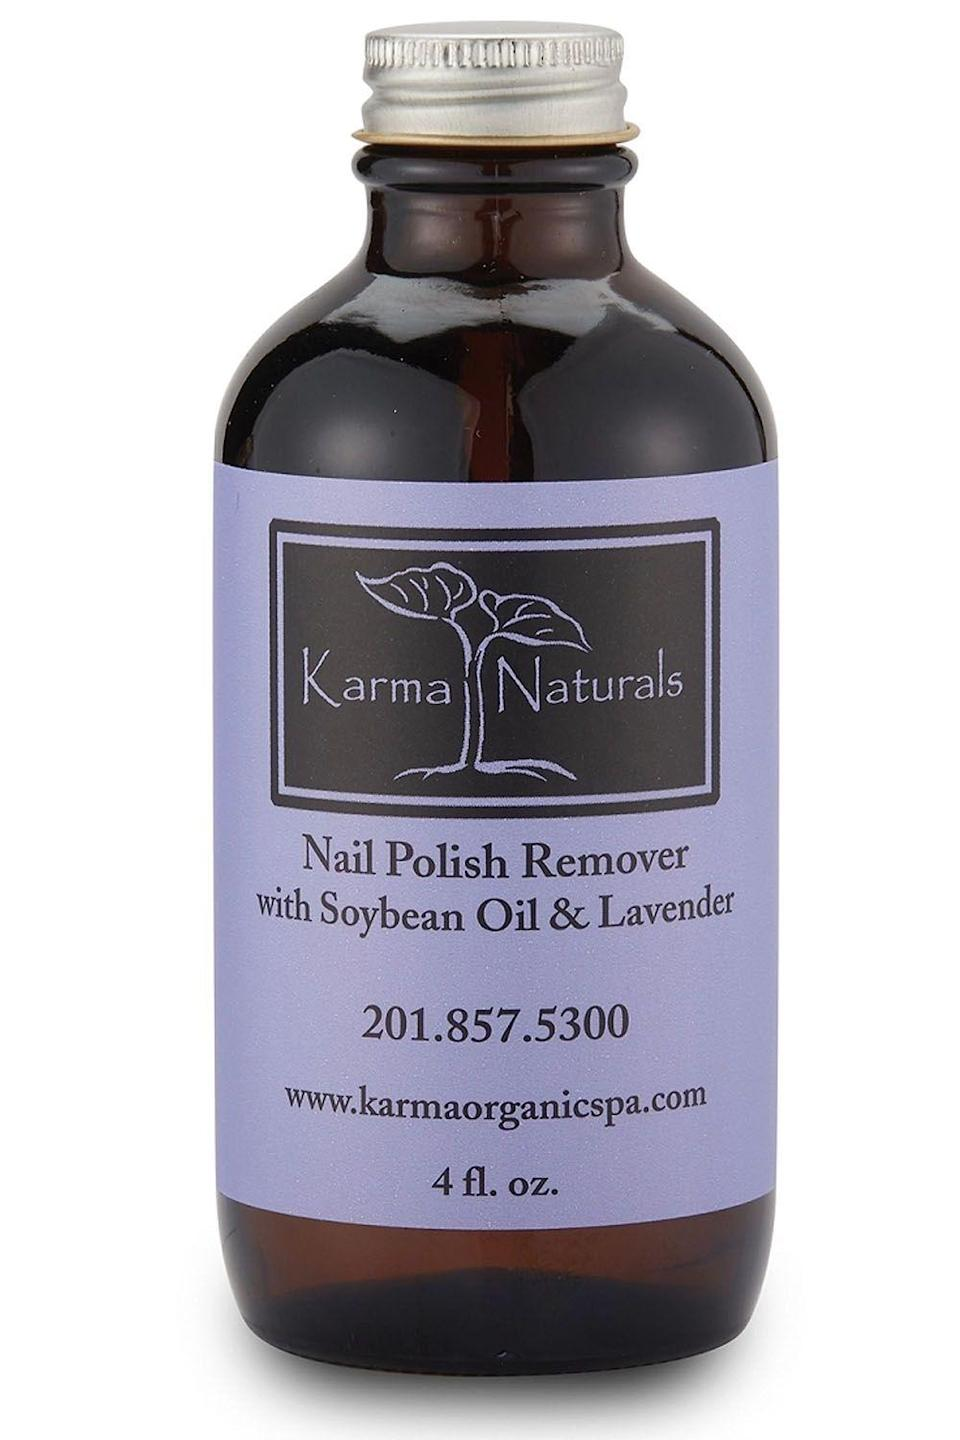 """<p><strong>karma organic</strong></p><p>amazon.com</p><p><strong>$11.99</strong></p><p><a href=""""https://www.amazon.com/dp/B00G7S424O?tag=syn-yahoo-20&ascsubtag=%5Bartid%7C10049.g.33348729%5Bsrc%7Cyahoo-us"""" rel=""""nofollow noopener"""" target=""""_blank"""" data-ylk=""""slk:Shop Now"""" class=""""link rapid-noclick-resp"""">Shop Now</a></p><p>FYI, headache-inducing smells and intense chemicals don't have to be a part of your removal routine. This acetone-free nail <a href=""""https://www.cosmopolitan.com/style-beauty/beauty/news/g4598/nail-polish-colors-for-spring/"""" rel=""""nofollow noopener"""" target=""""_blank"""" data-ylk=""""slk:polish"""" class=""""link rapid-noclick-resp"""">polish</a> remover won't leave you (or your nails) stressed out—with soybean oil and lavender essential oils, <strong>it cleans up your nails, while also leaving them soft and smooth.</strong><br></p>"""